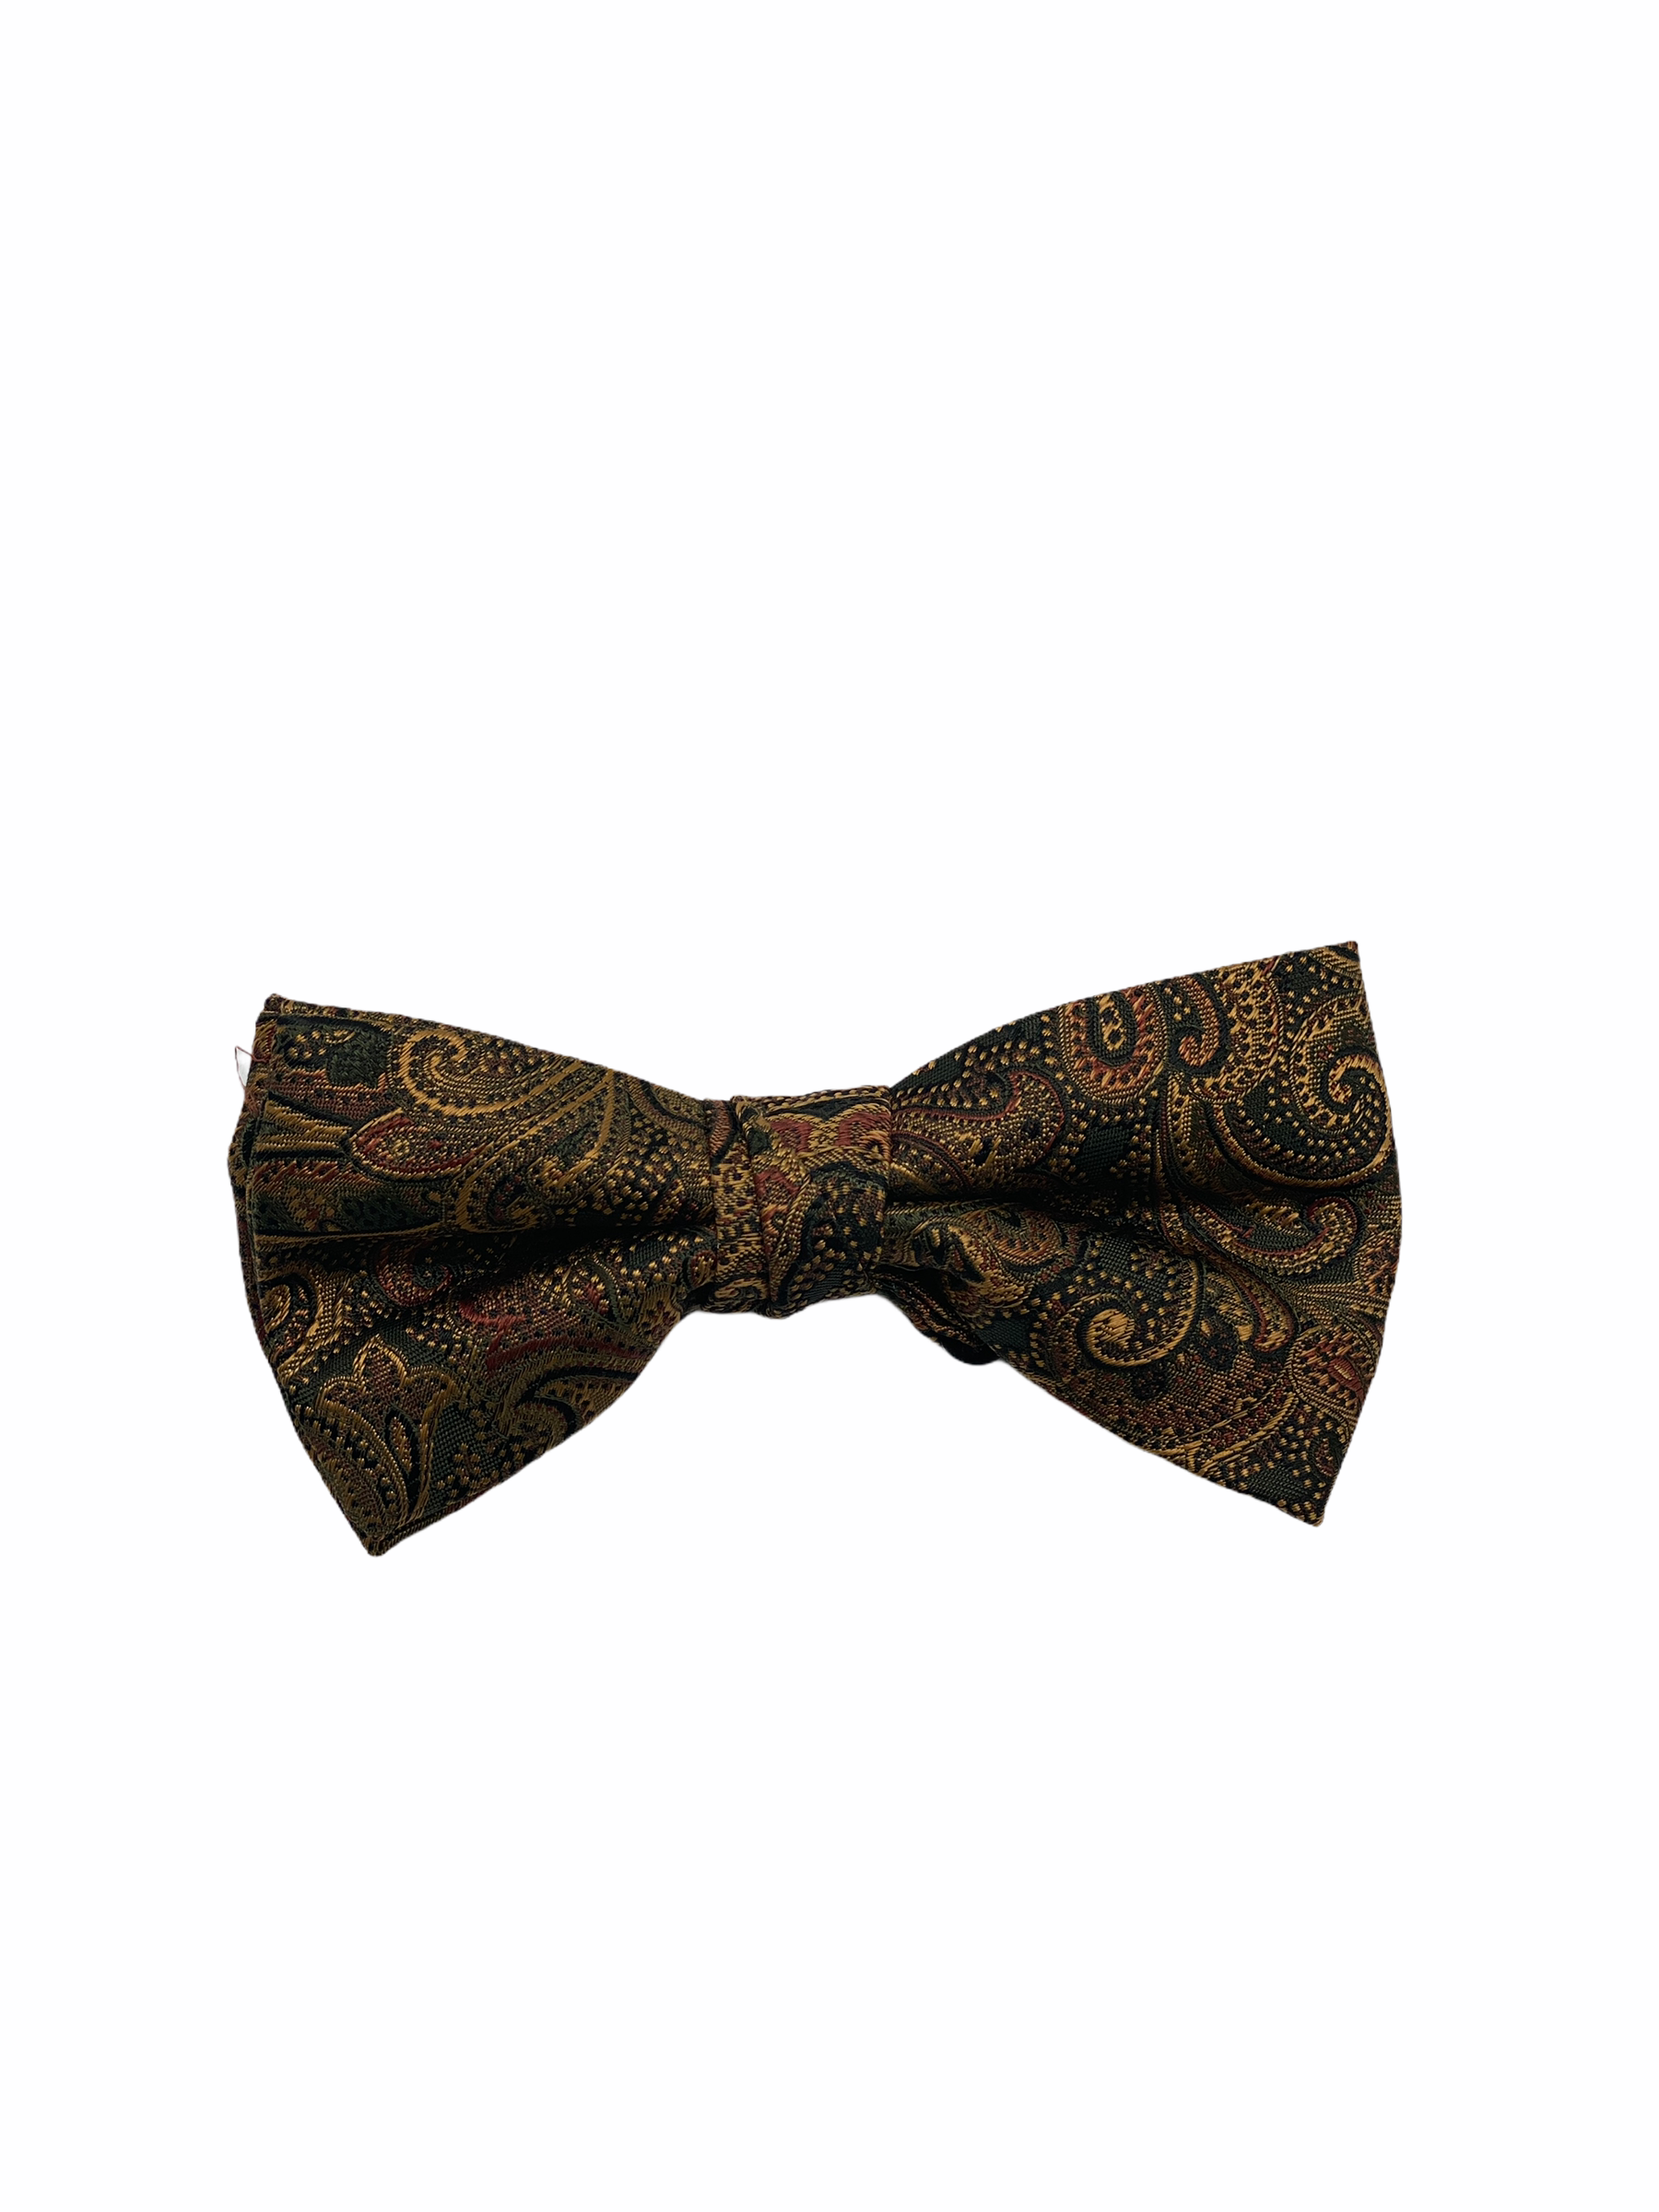 Green with Gold Paisley Silk Bow Tie